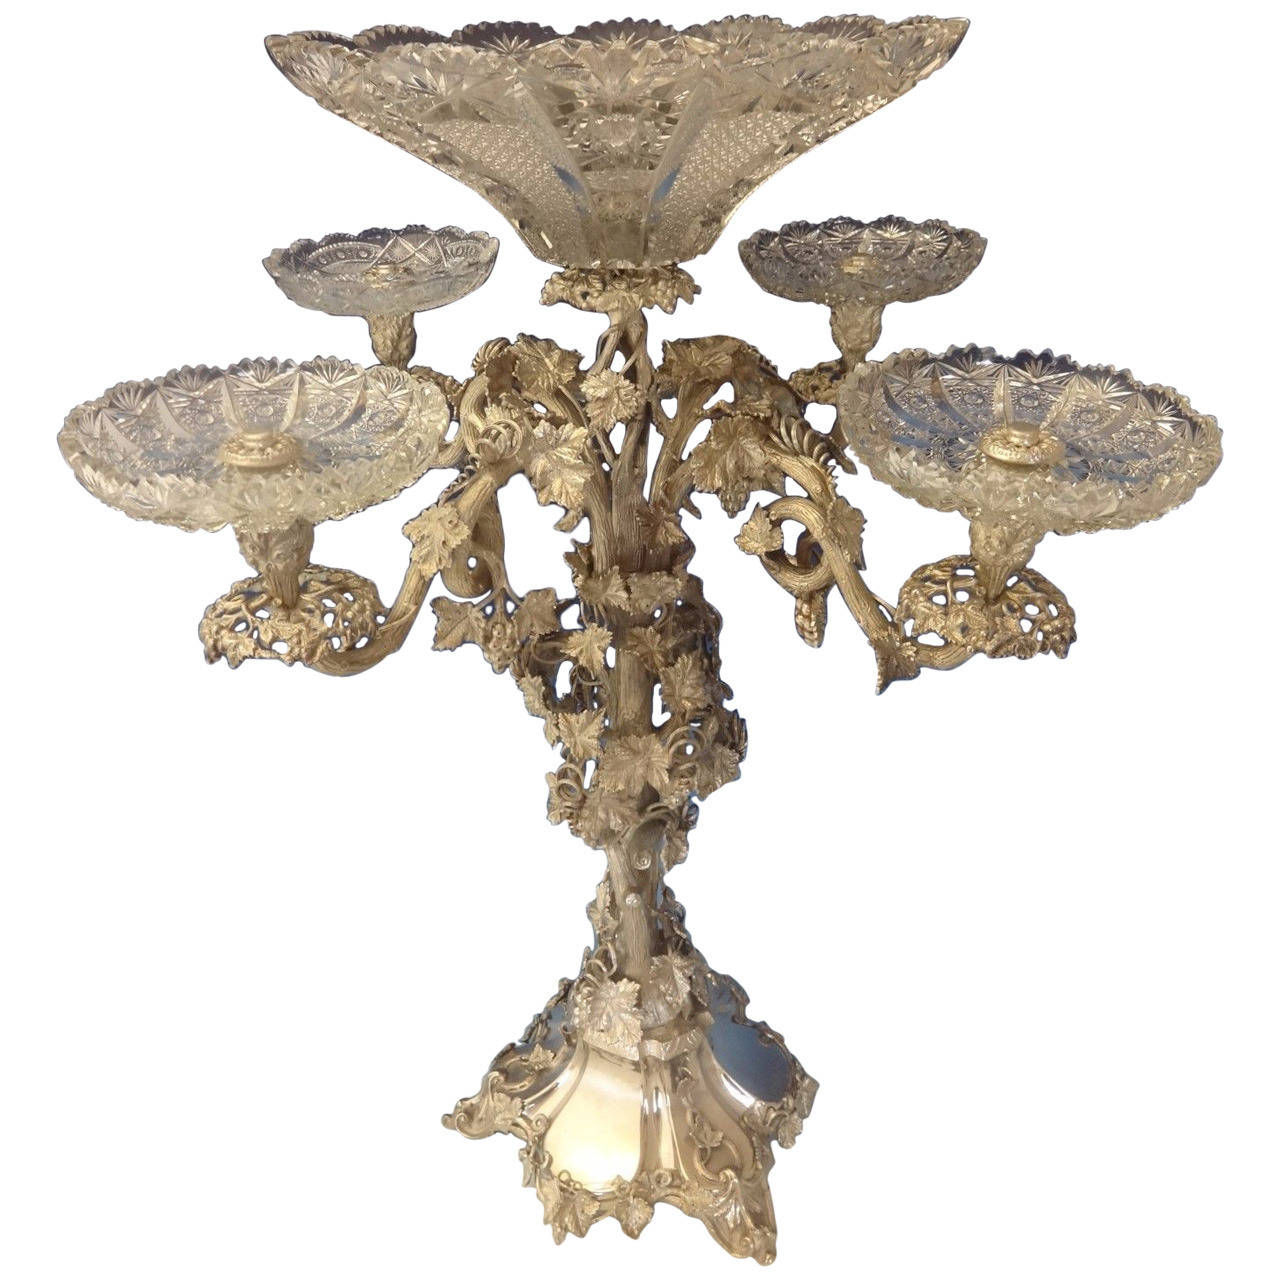 Using Antique Epergne for Dining Table Accessories Ideas: Wondrous Epergne Style | Simple Crystal Epergne